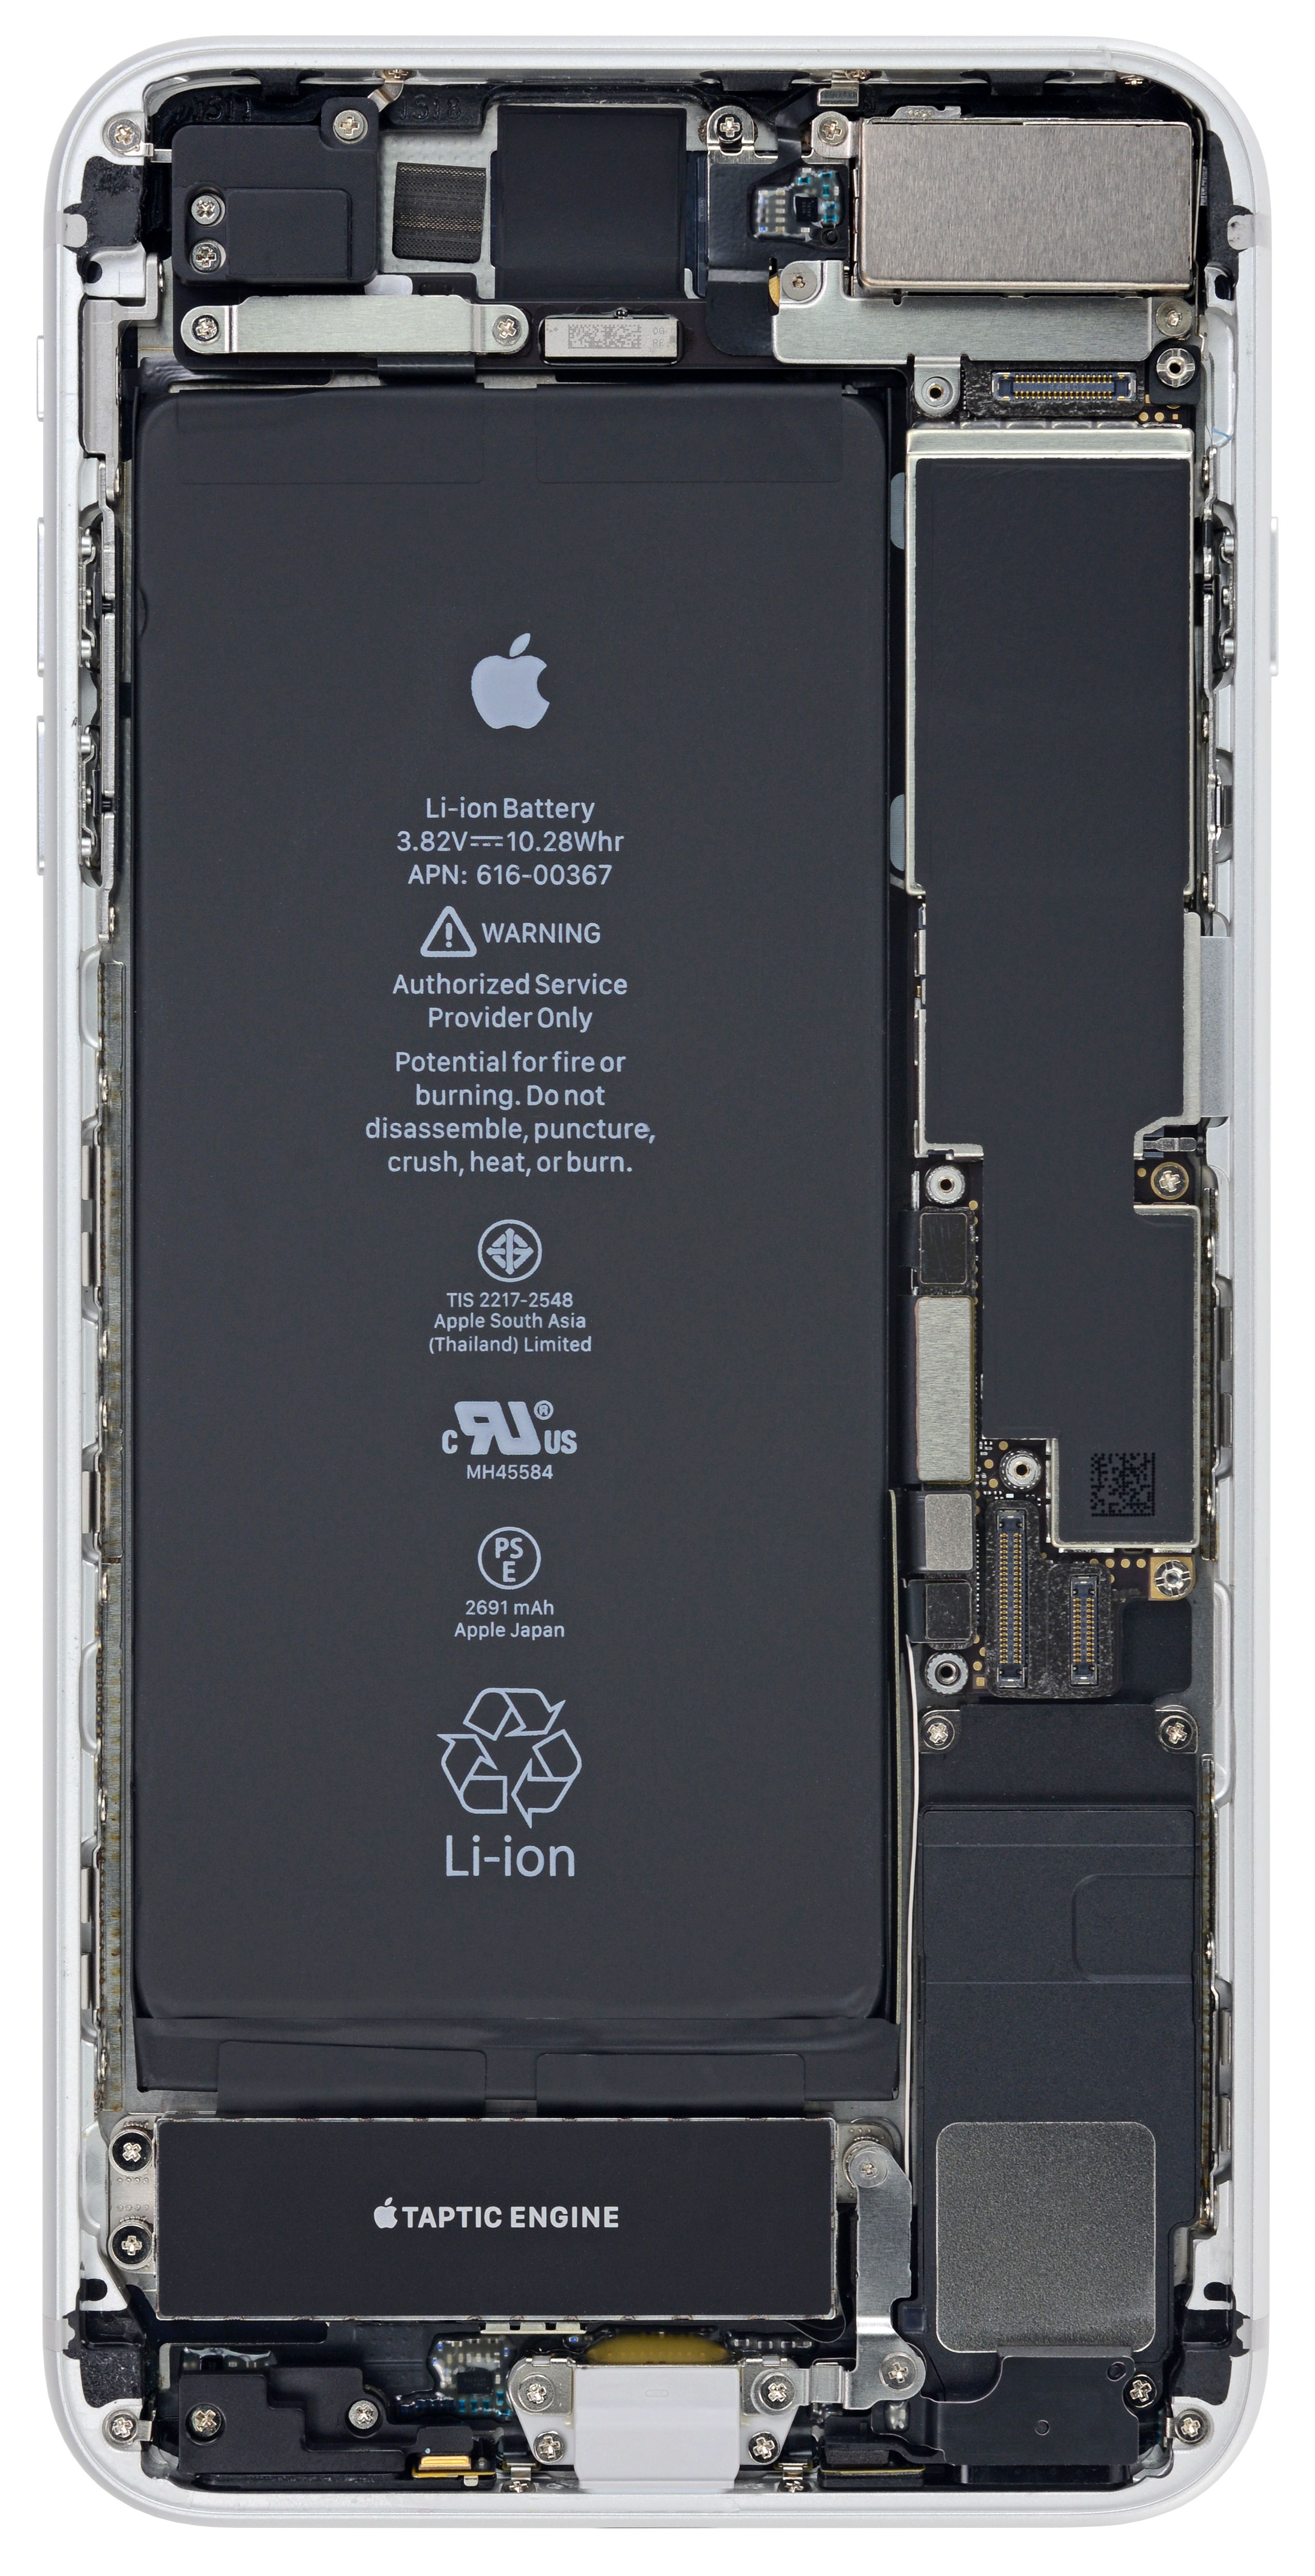 X Vision Internals Wallpaper For The Iphone 6 Iphone 6 Plus